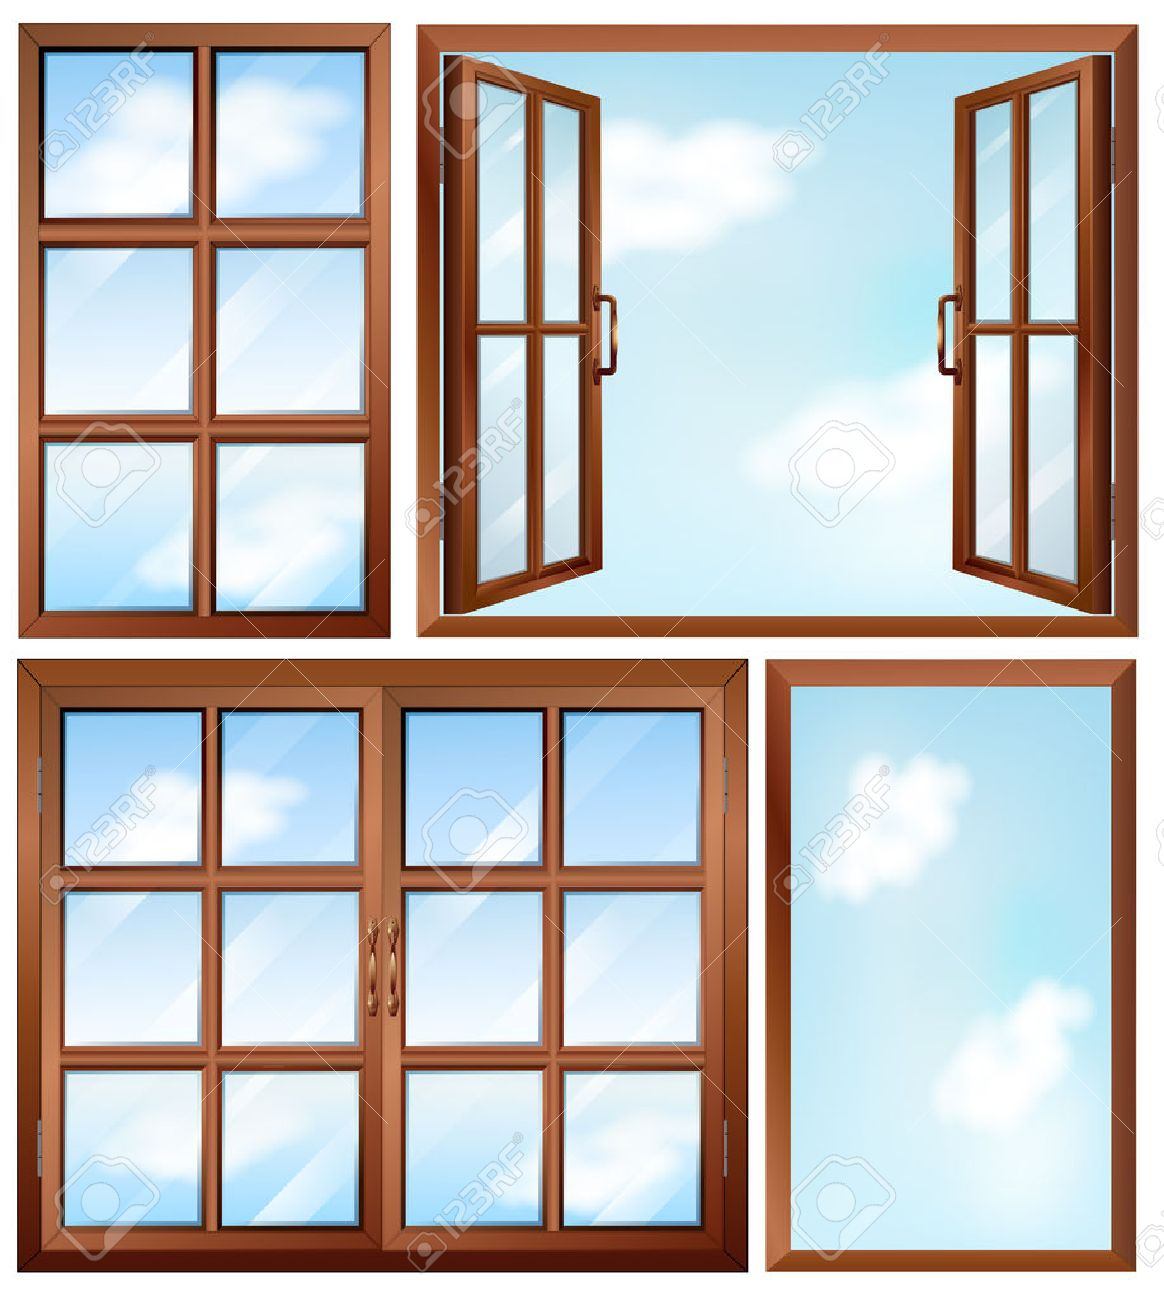 Illustration of the different window designs on a white - 26746736